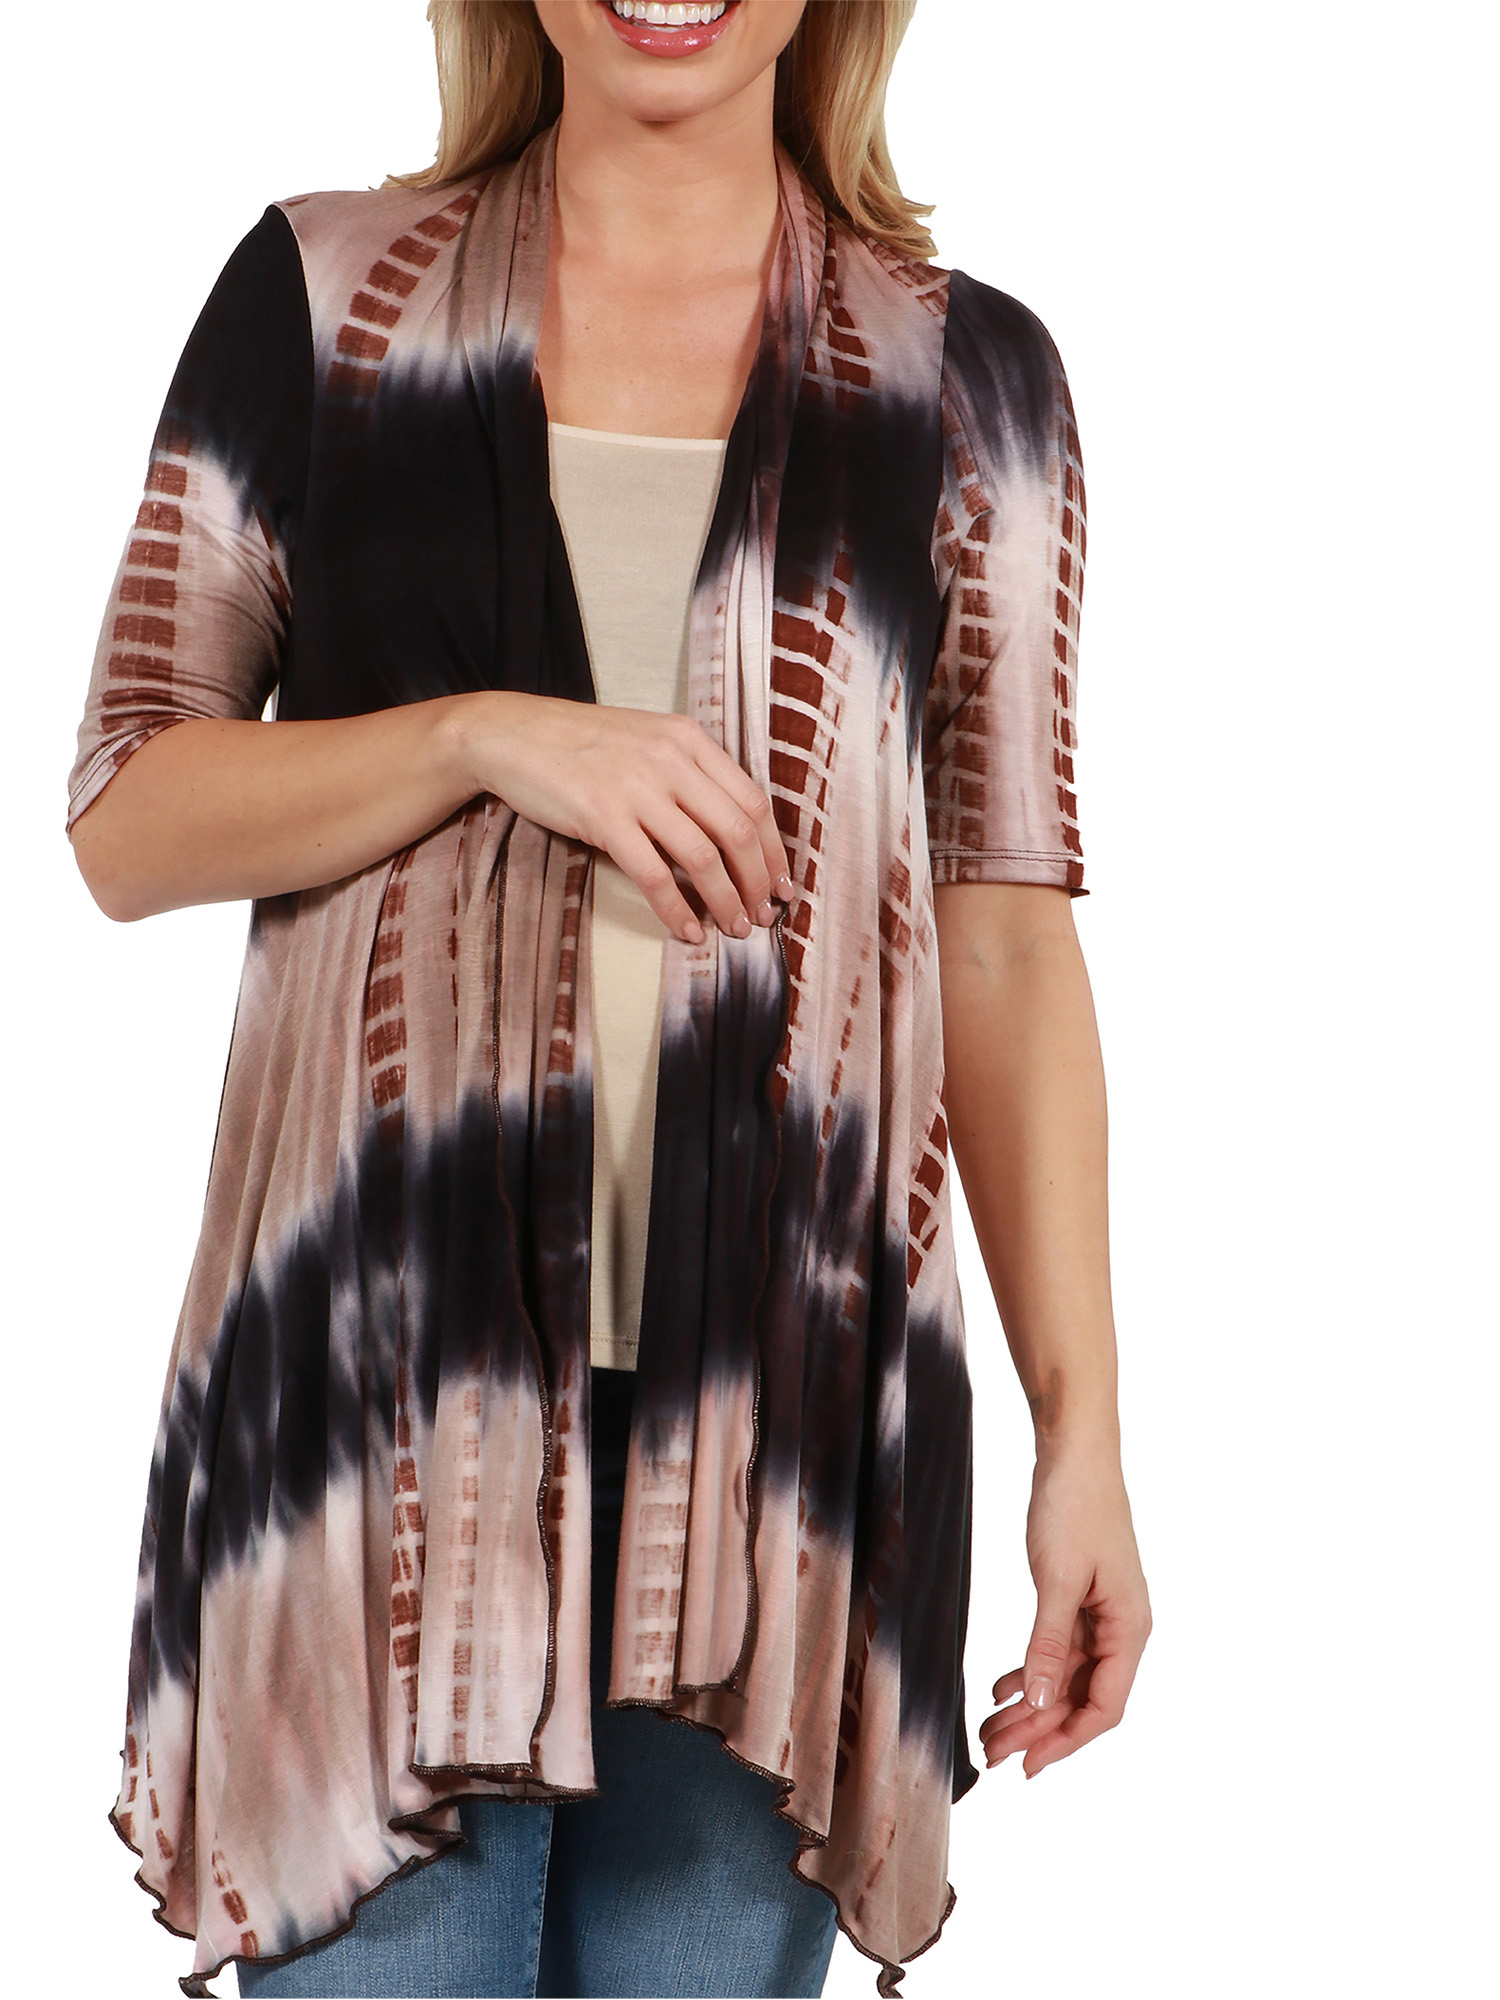 24Seven Comfort Apparel Amy Hi Lo Brown and Navy Maternity Shrug by 24/7 Comfort